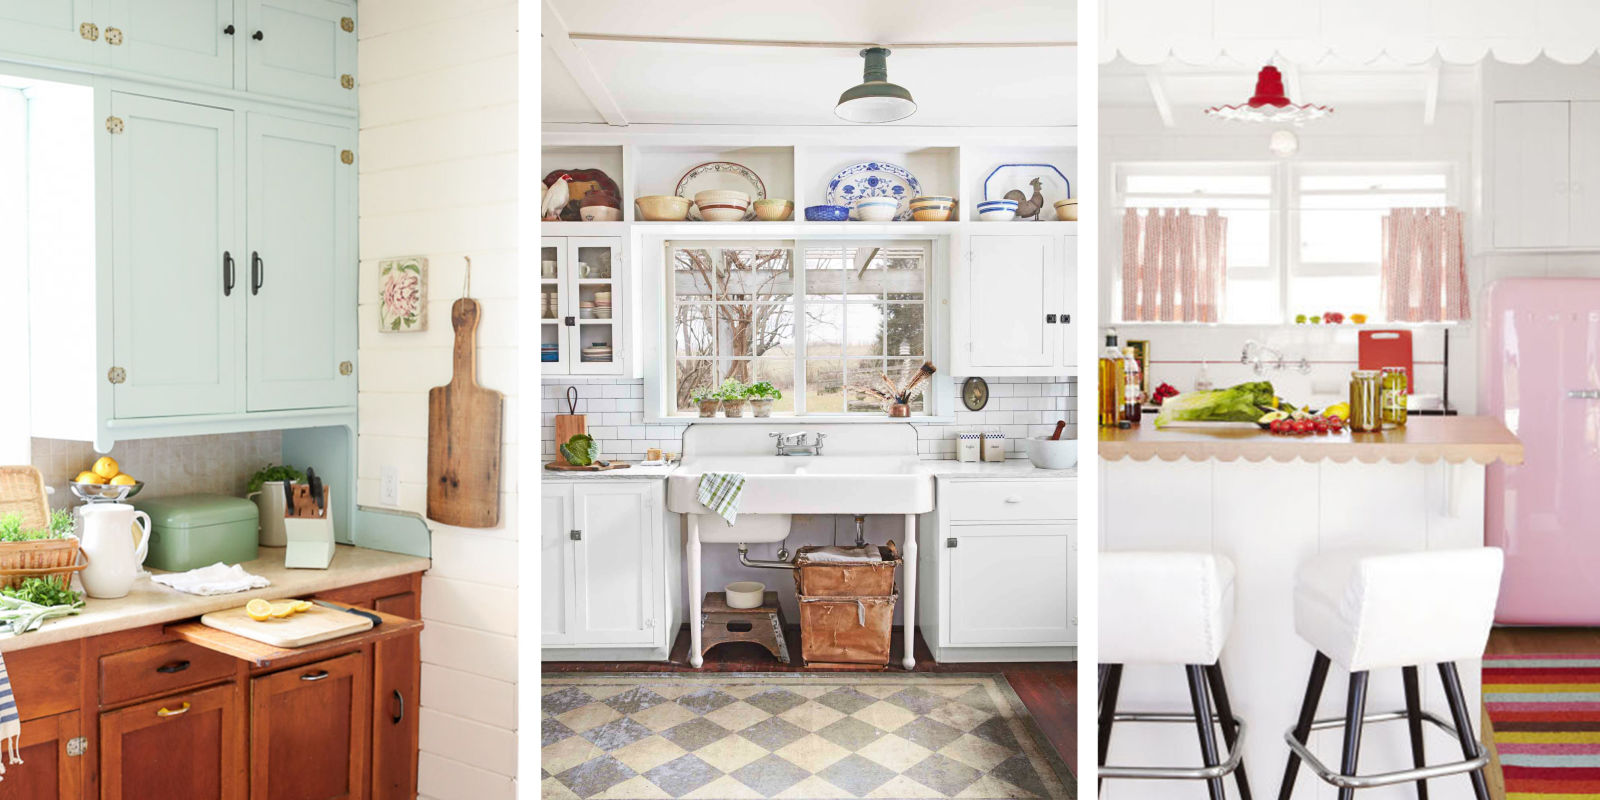 20 vintage kitchen decorating ideas design inspiration for Vintage kitchen designs photos